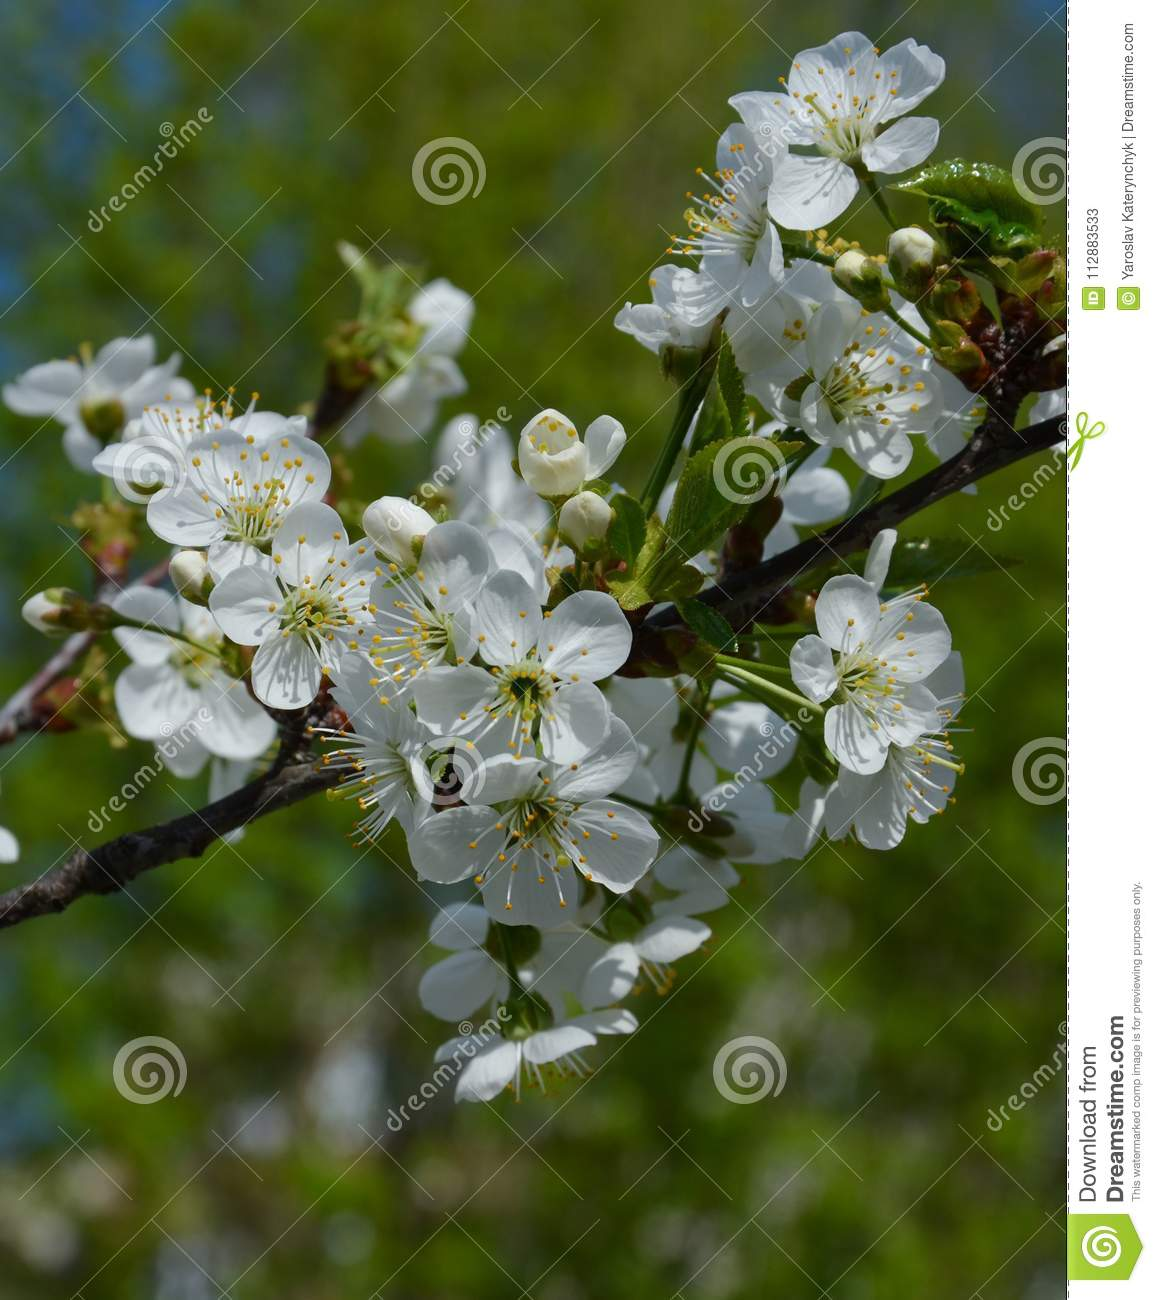 The Cherry Tree Blooms With White Flowers Stock Image Image Of